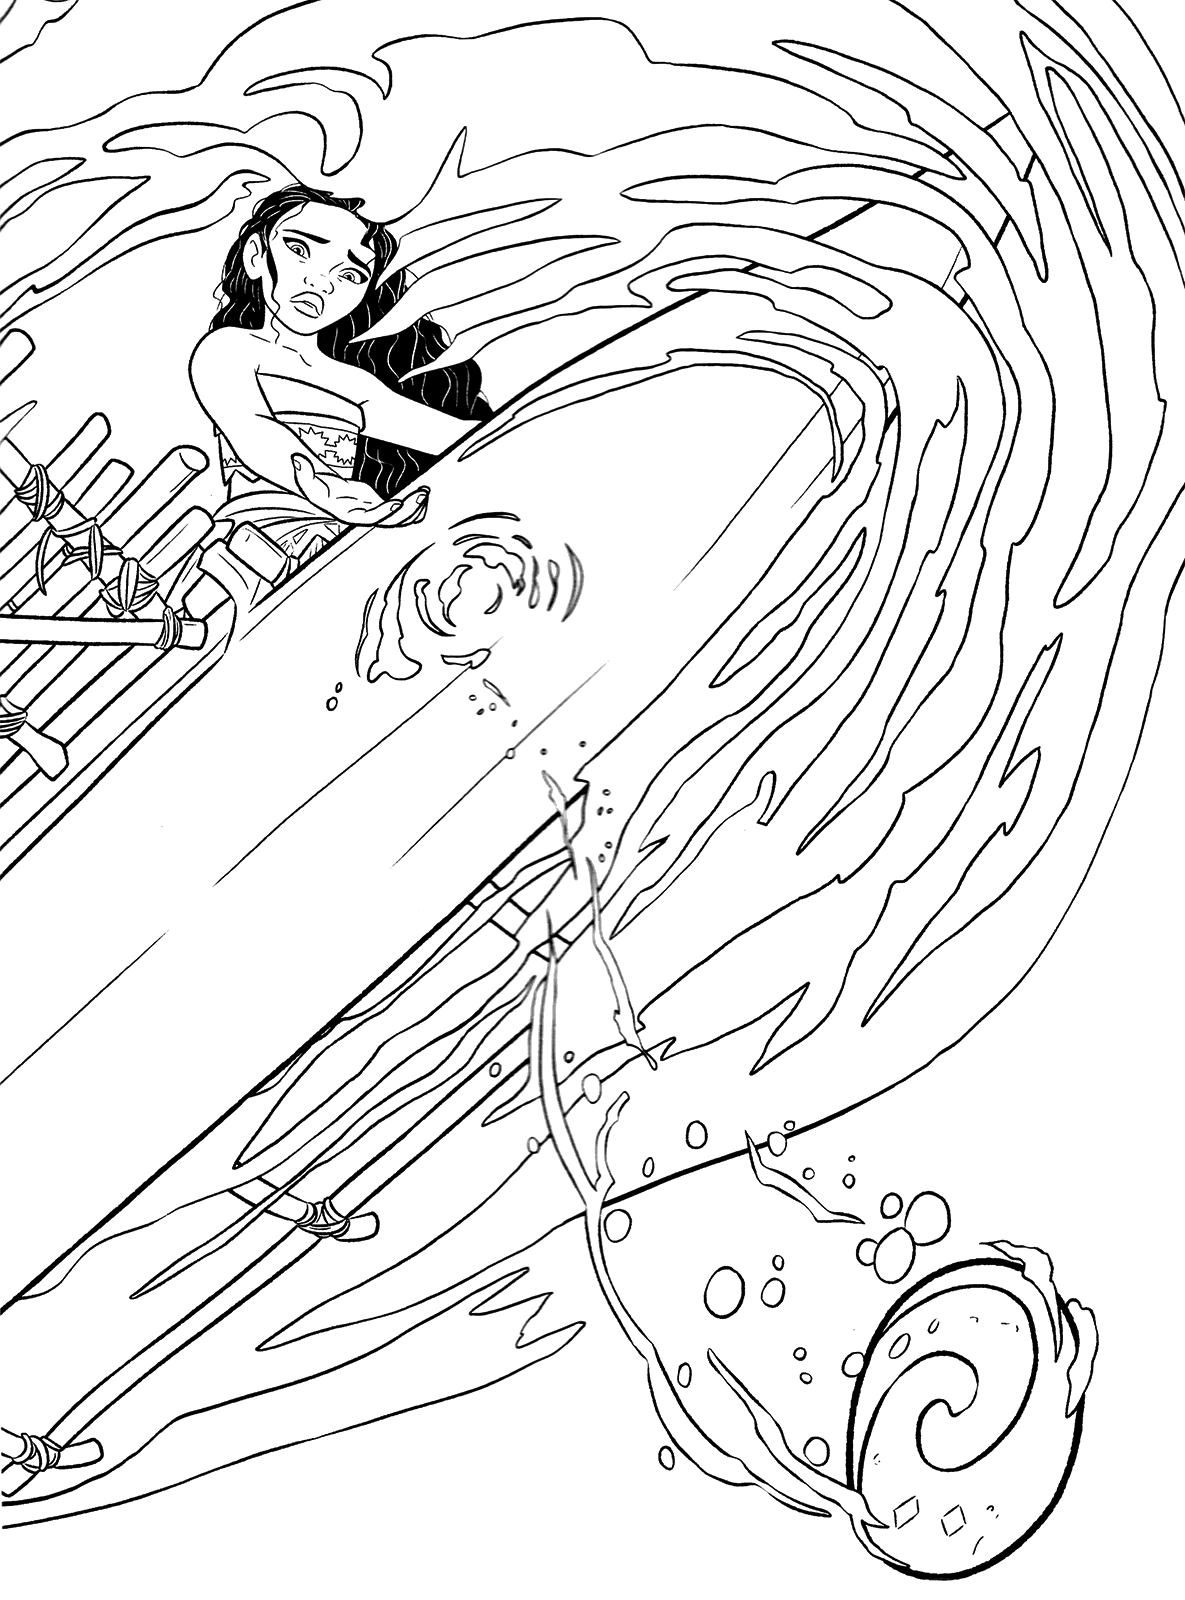 Maui Coloring Pages at GetDrawings com   Free for personal use Maui